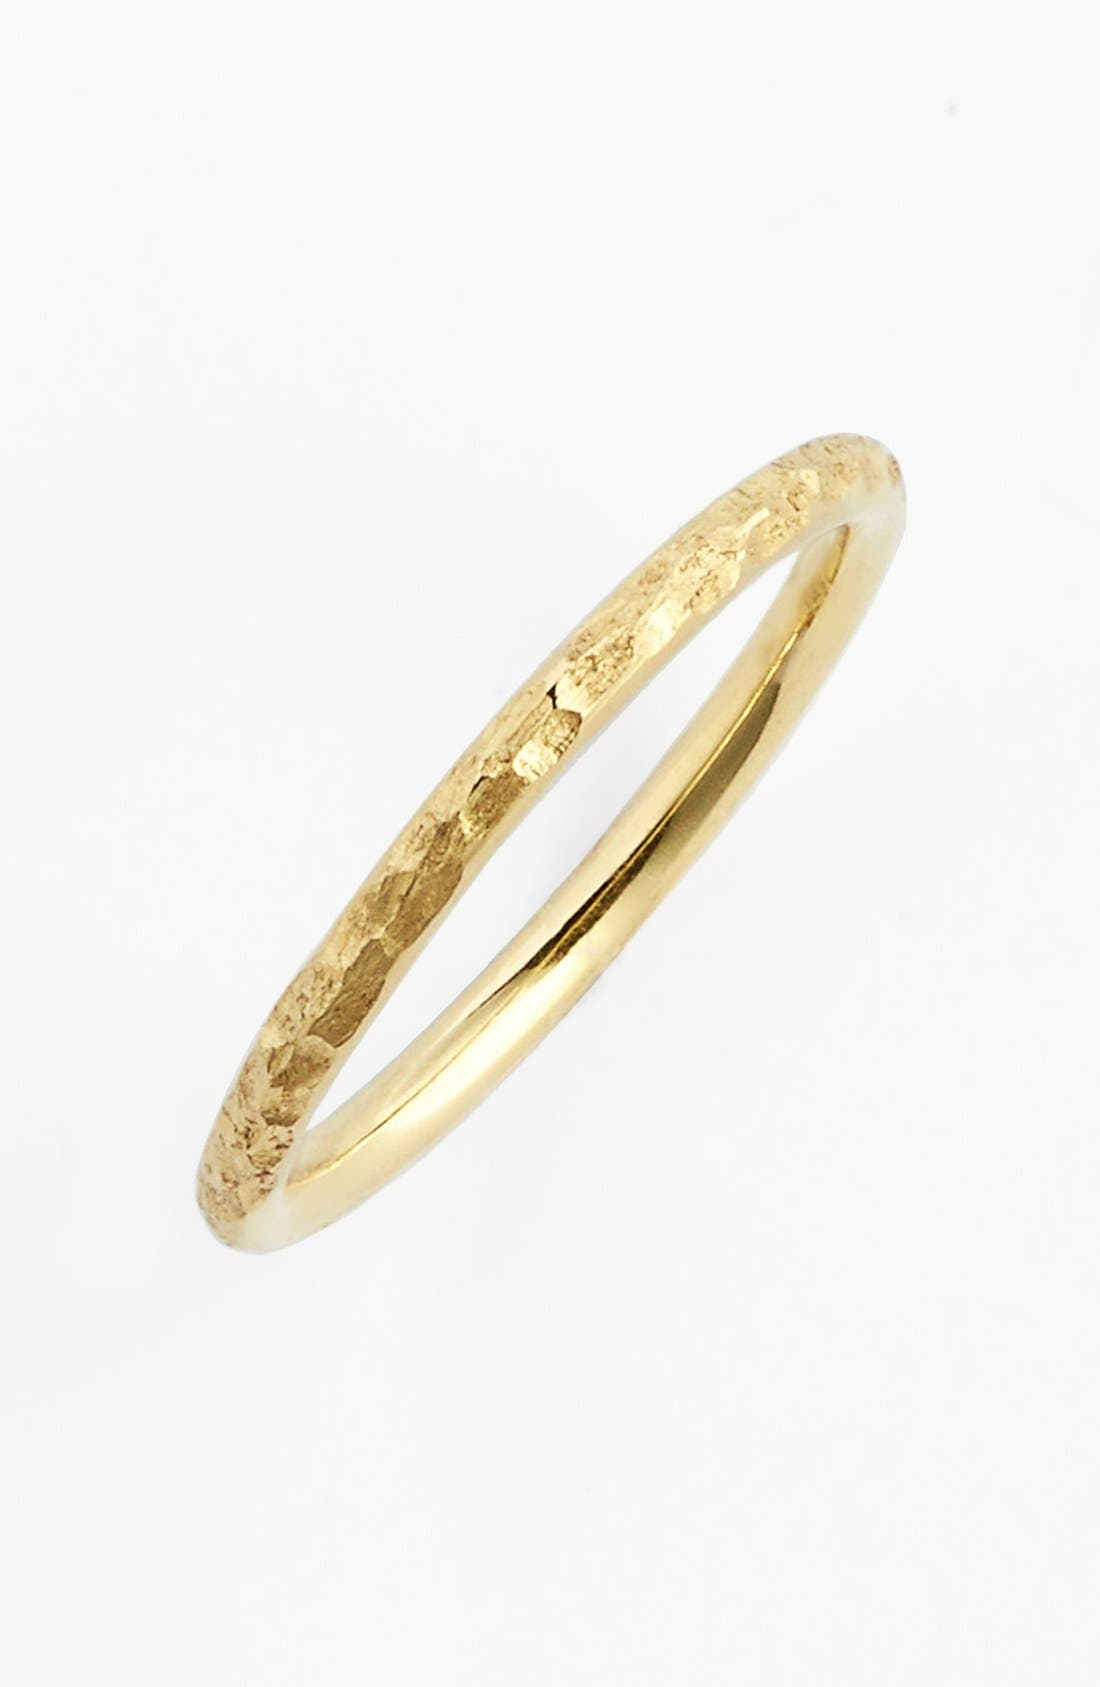 Hammered 14k Gold Midi Ring,                         Main,                         color, Yellow Gold